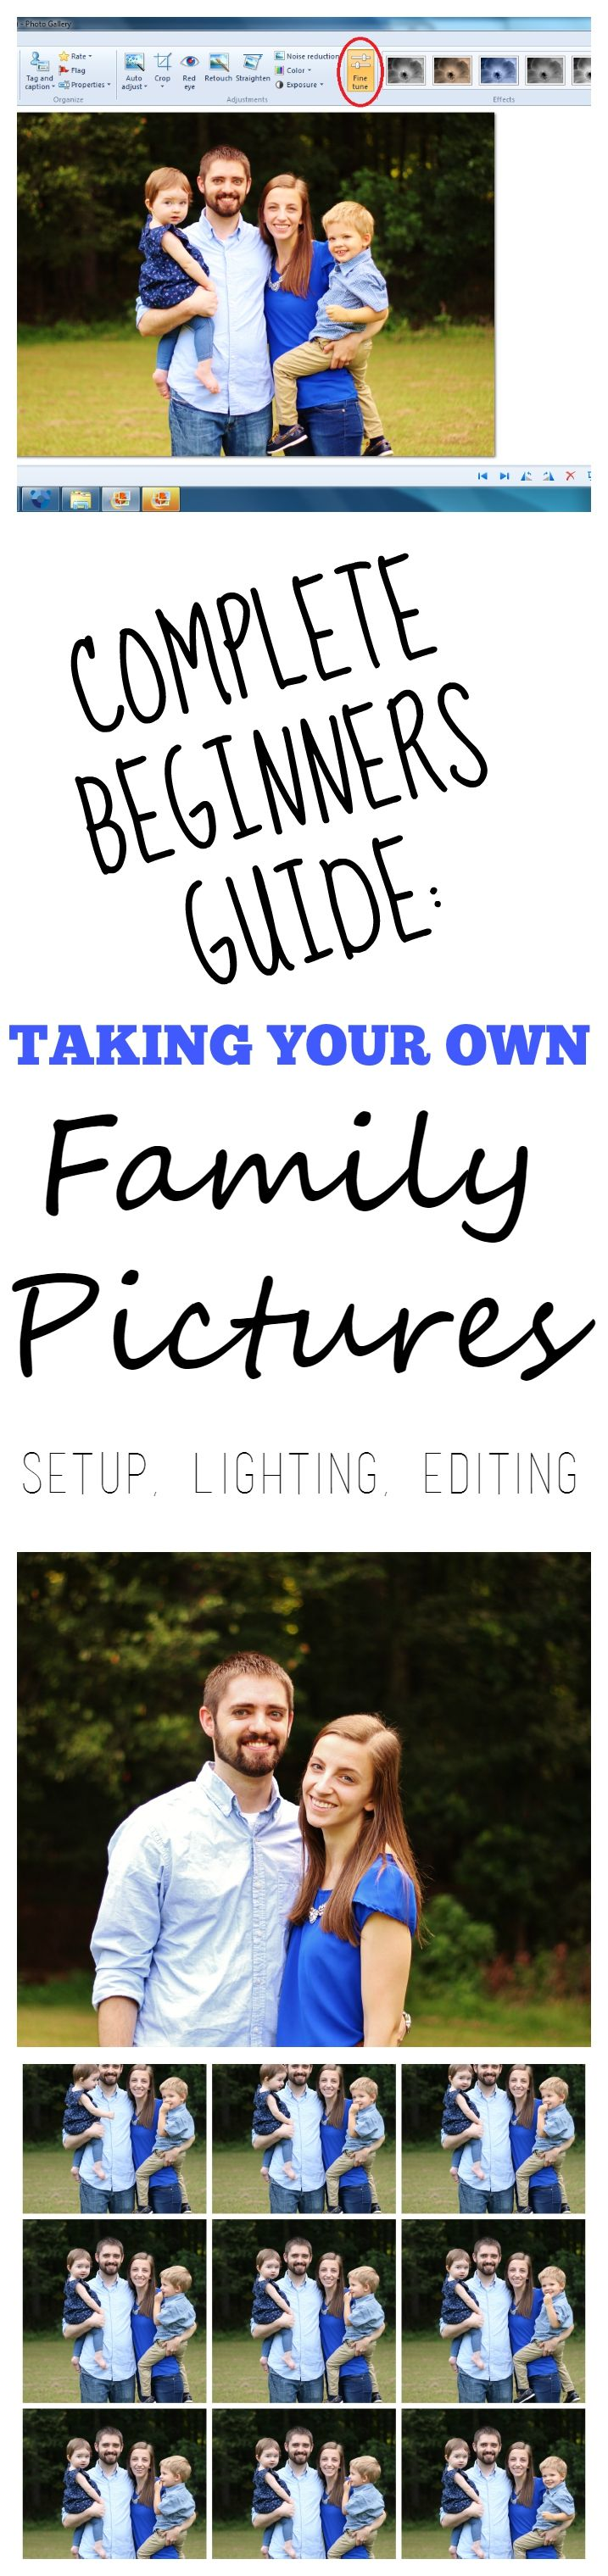 Everything you need to know when taking your own family pictures, from editing, lighting, setup, and camera settings!